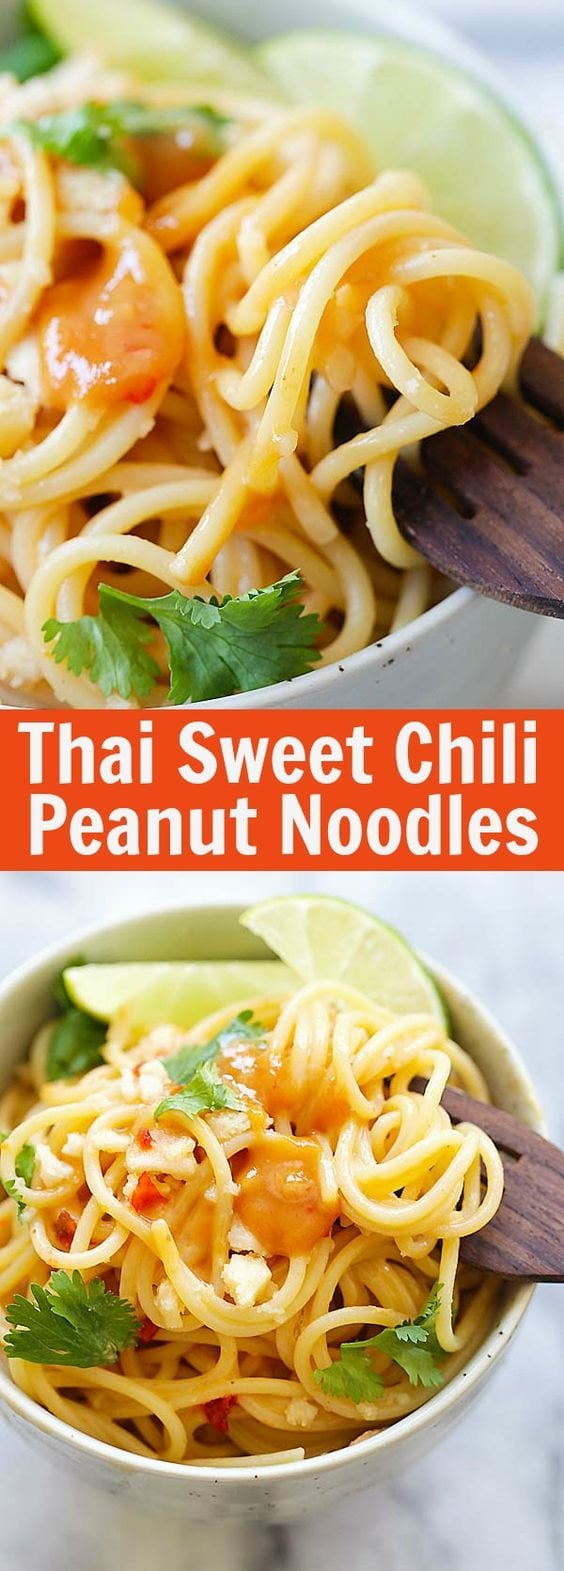 Thai Sweet Chili Peanut Noodles – quick noodles with a creamy and spicy Thai peanut sauce. Four ingredients and 15 minutes to make | rasamalaysia.com